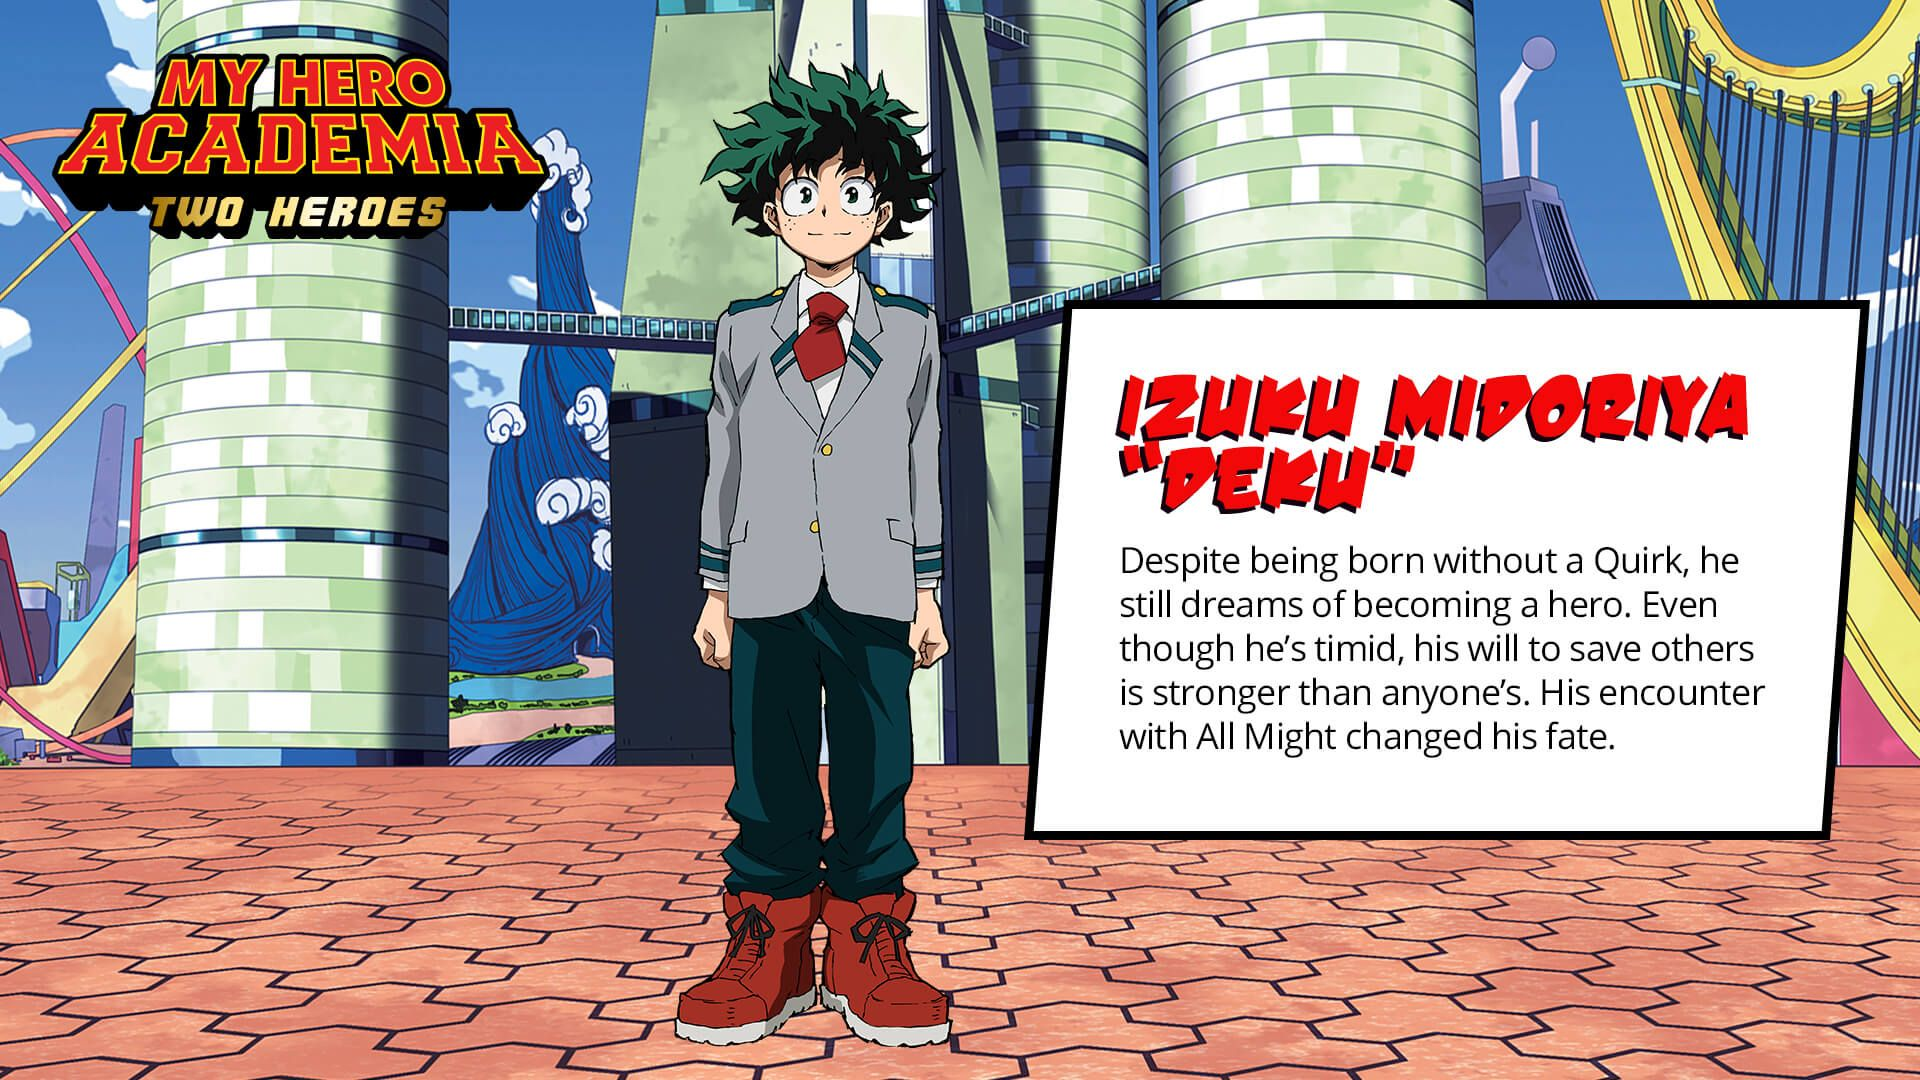 My Hero Academia Movie Extends Its Theatrical Run Collider